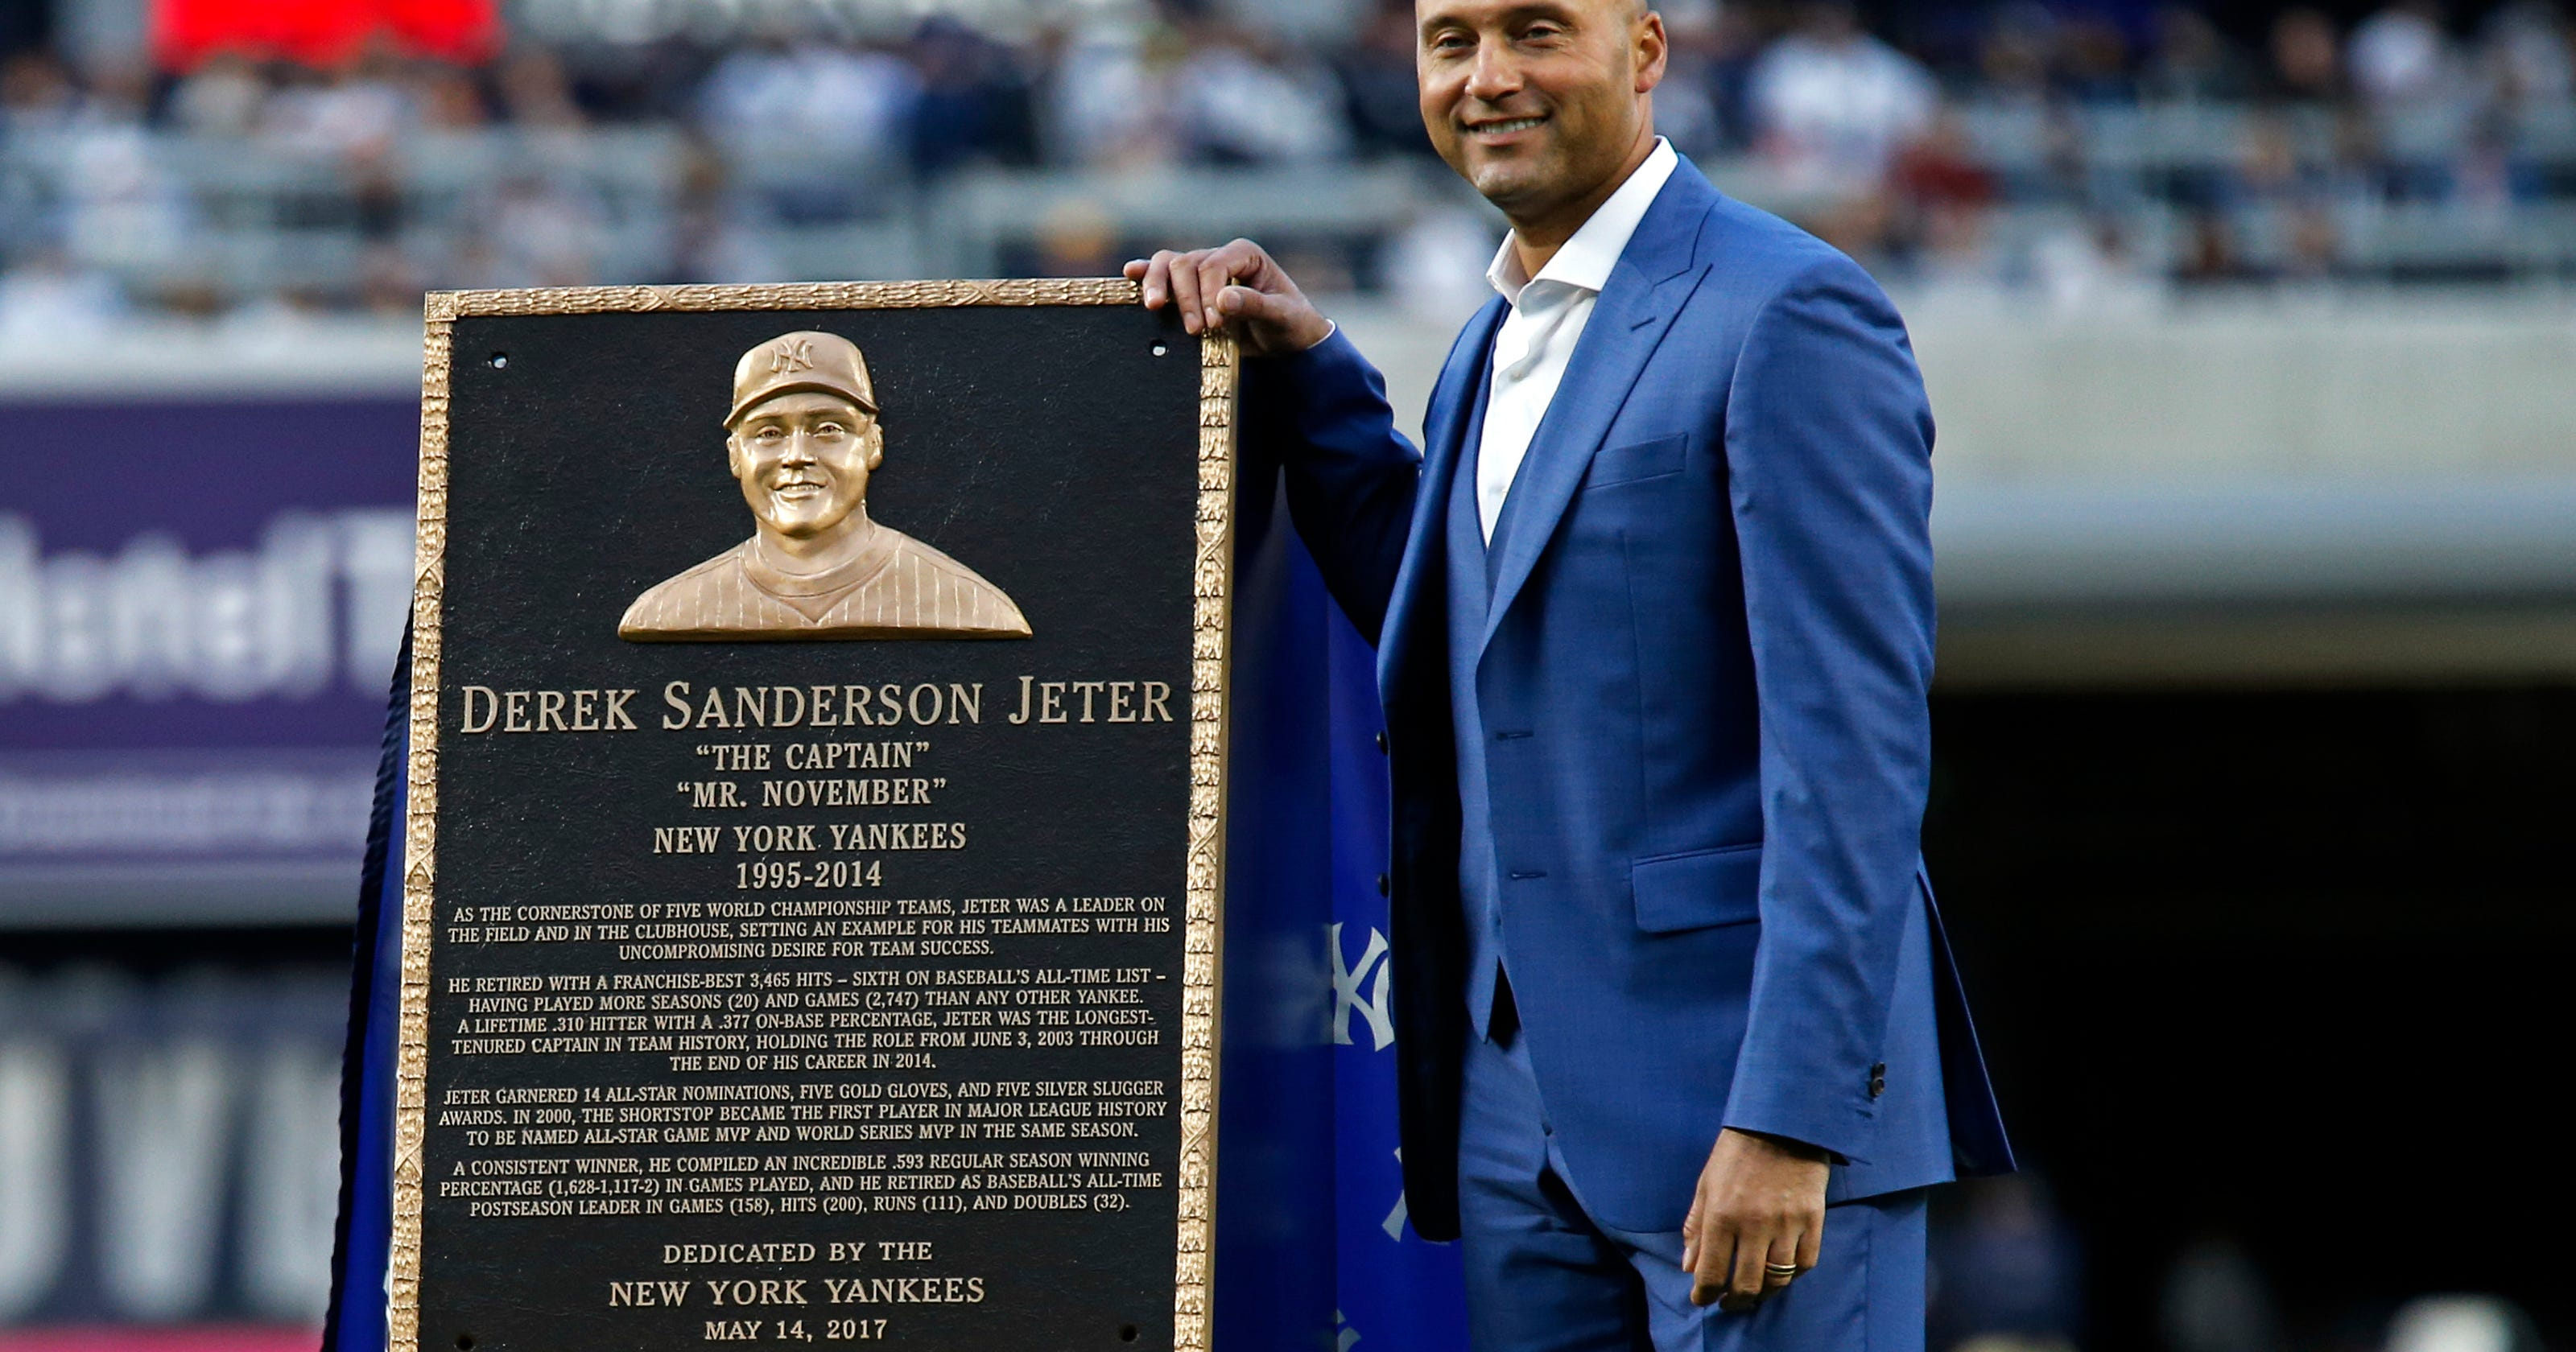 Klapisch  Stadium crowd chants Jeter s name one last time ded23f5a1641